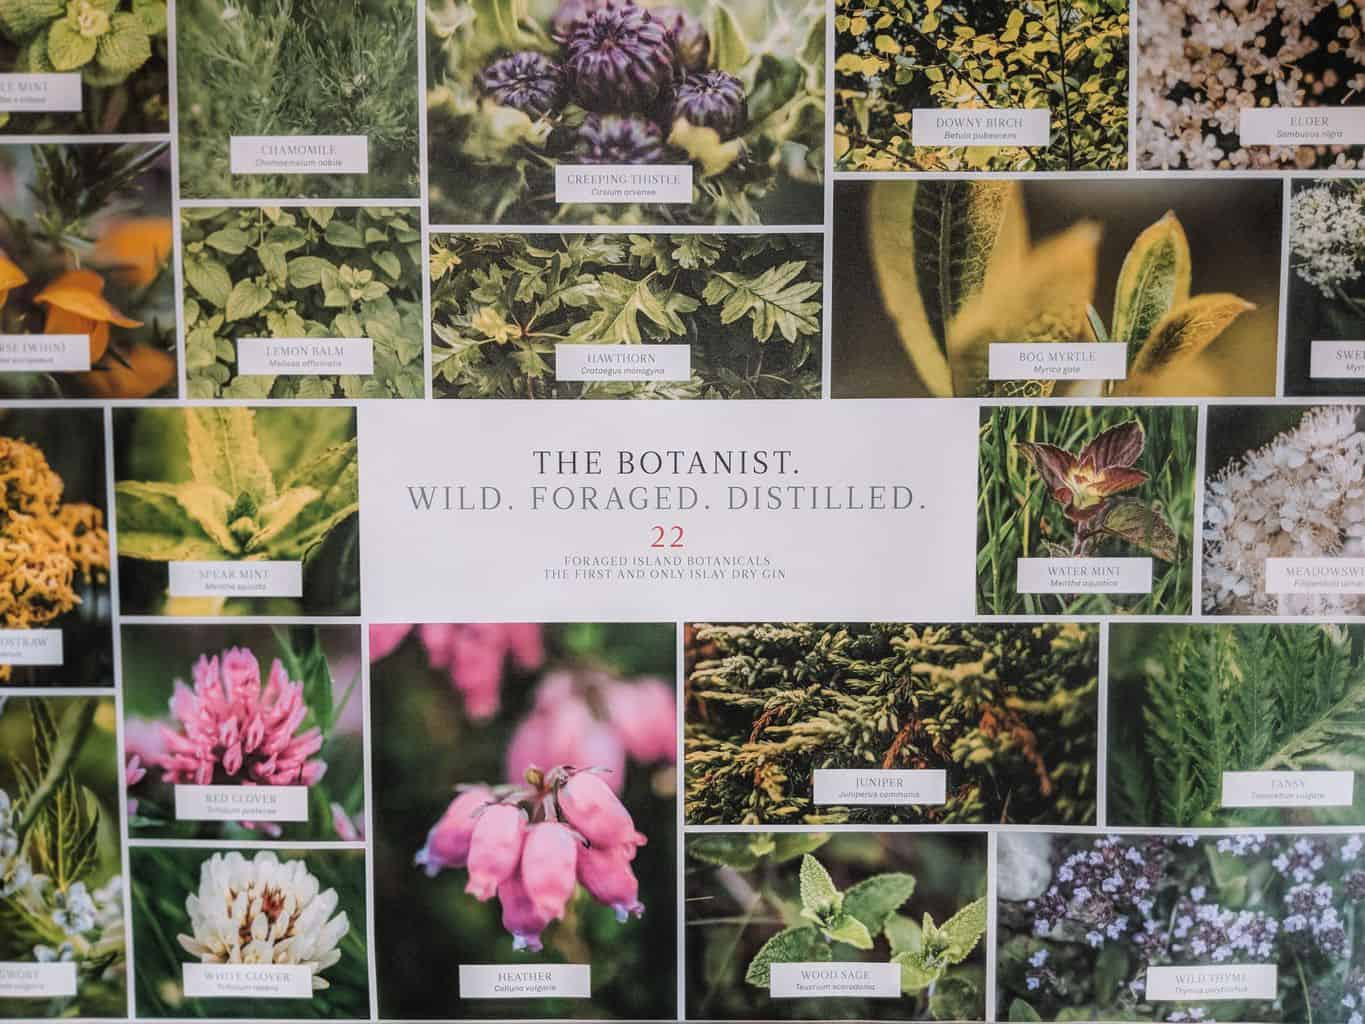 Reasons To Love The Botanist Gin From Scotland's Isle of Islay, Islay distilleries, Bruichladdich distillery, Islay gin